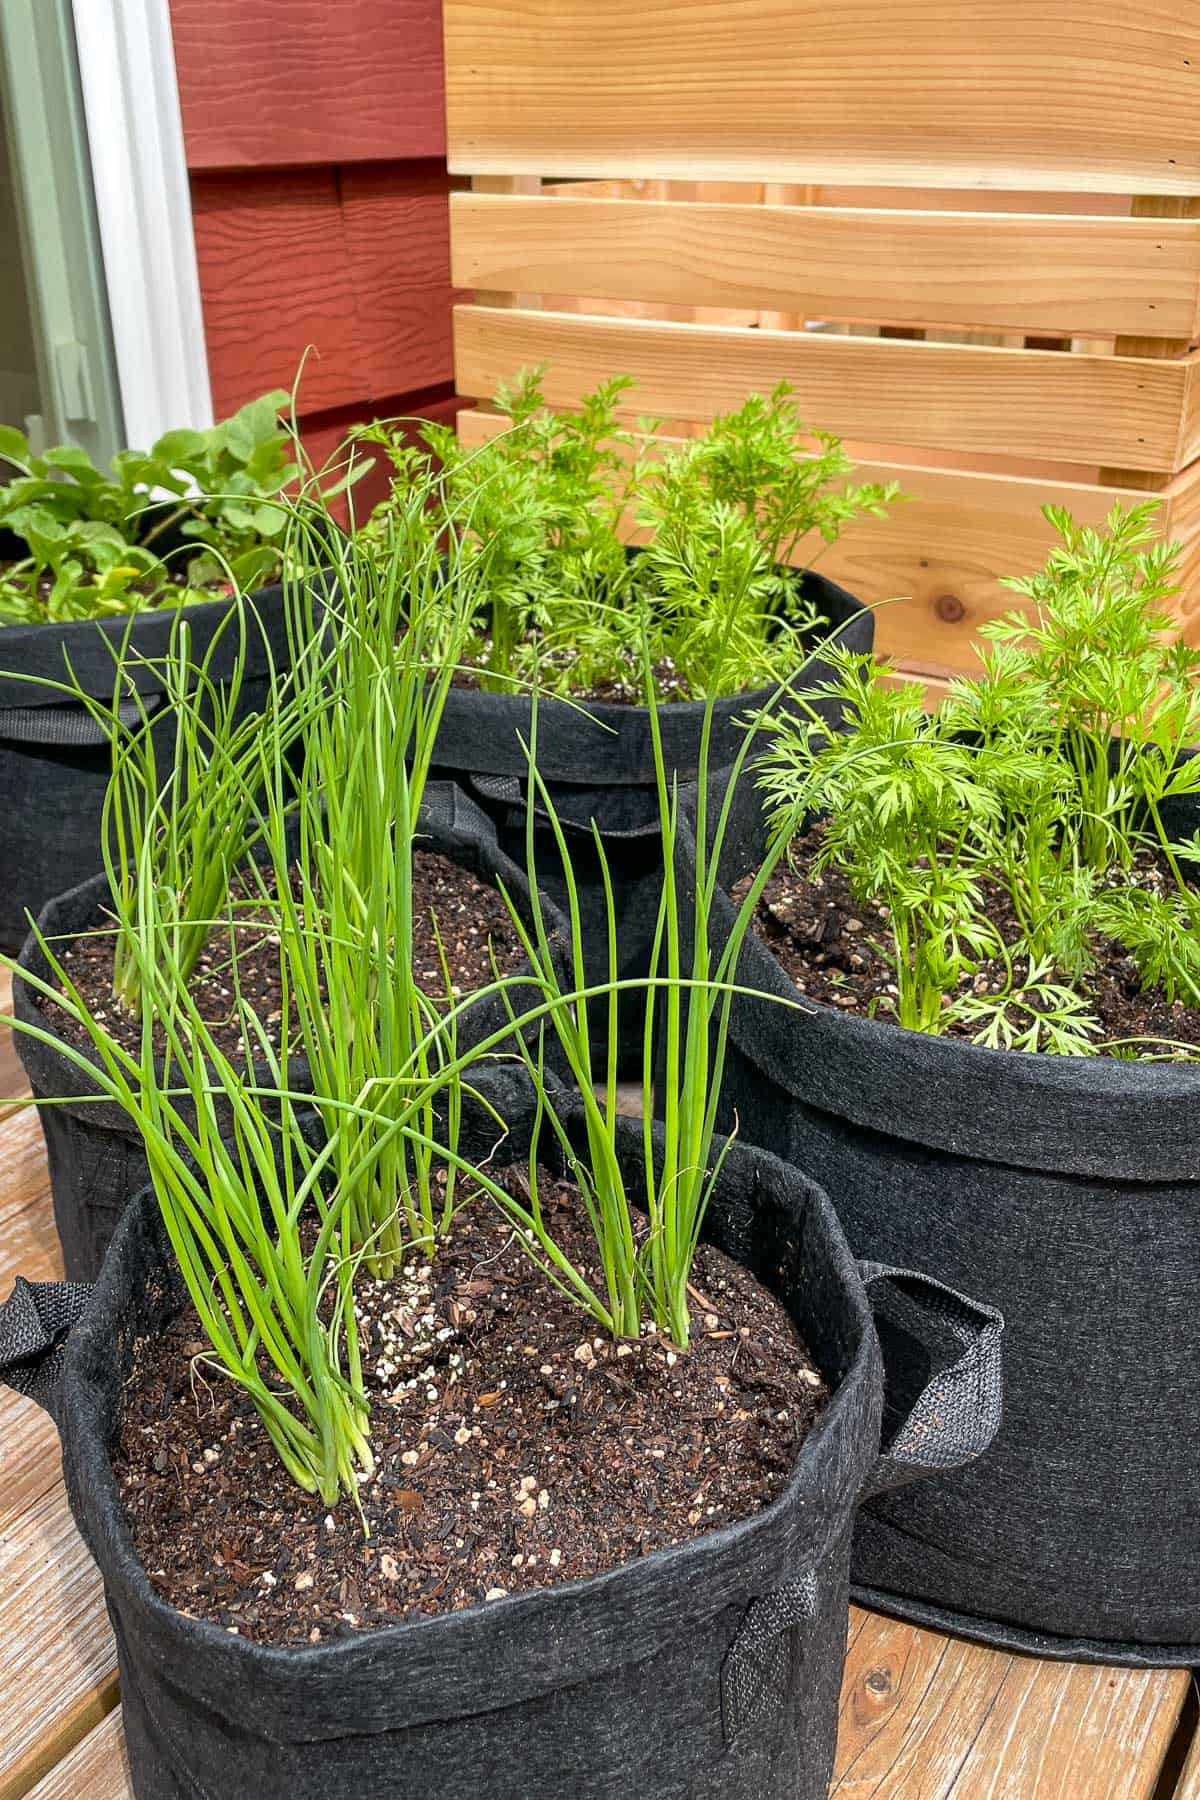 grow bags with various vegetables next to planter box